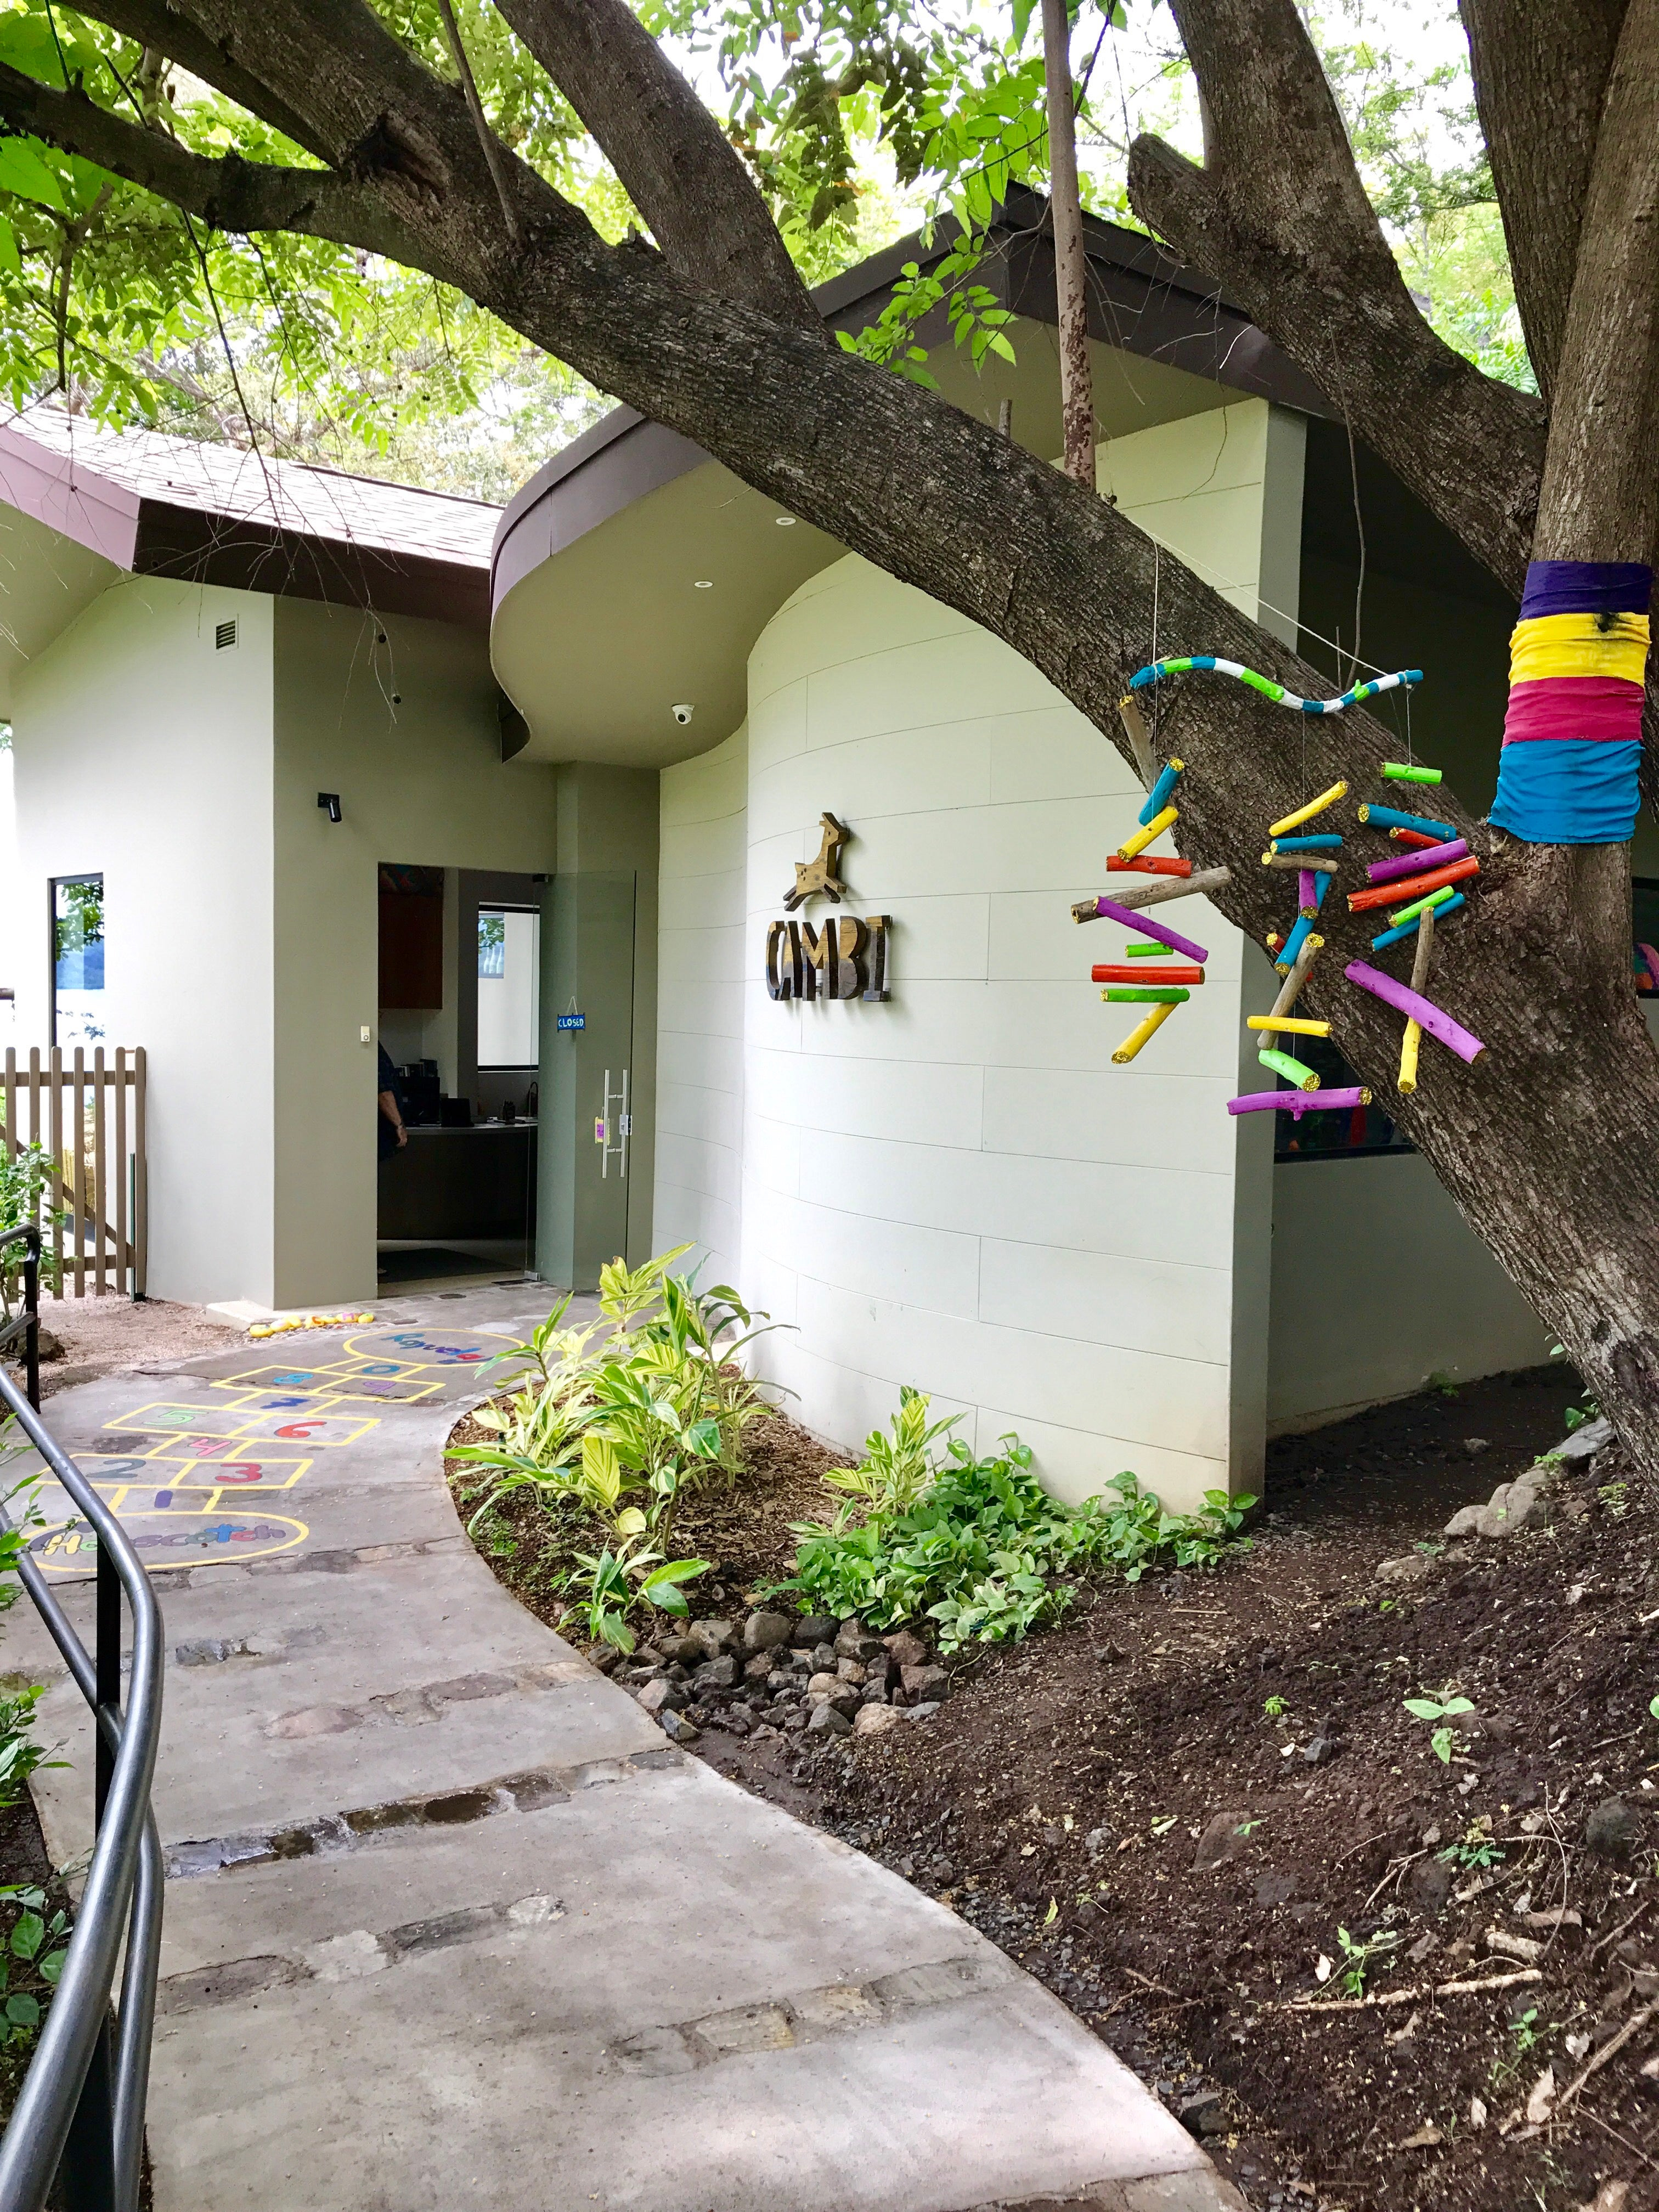 Cambi Kid's Club at Andaz Papagayo